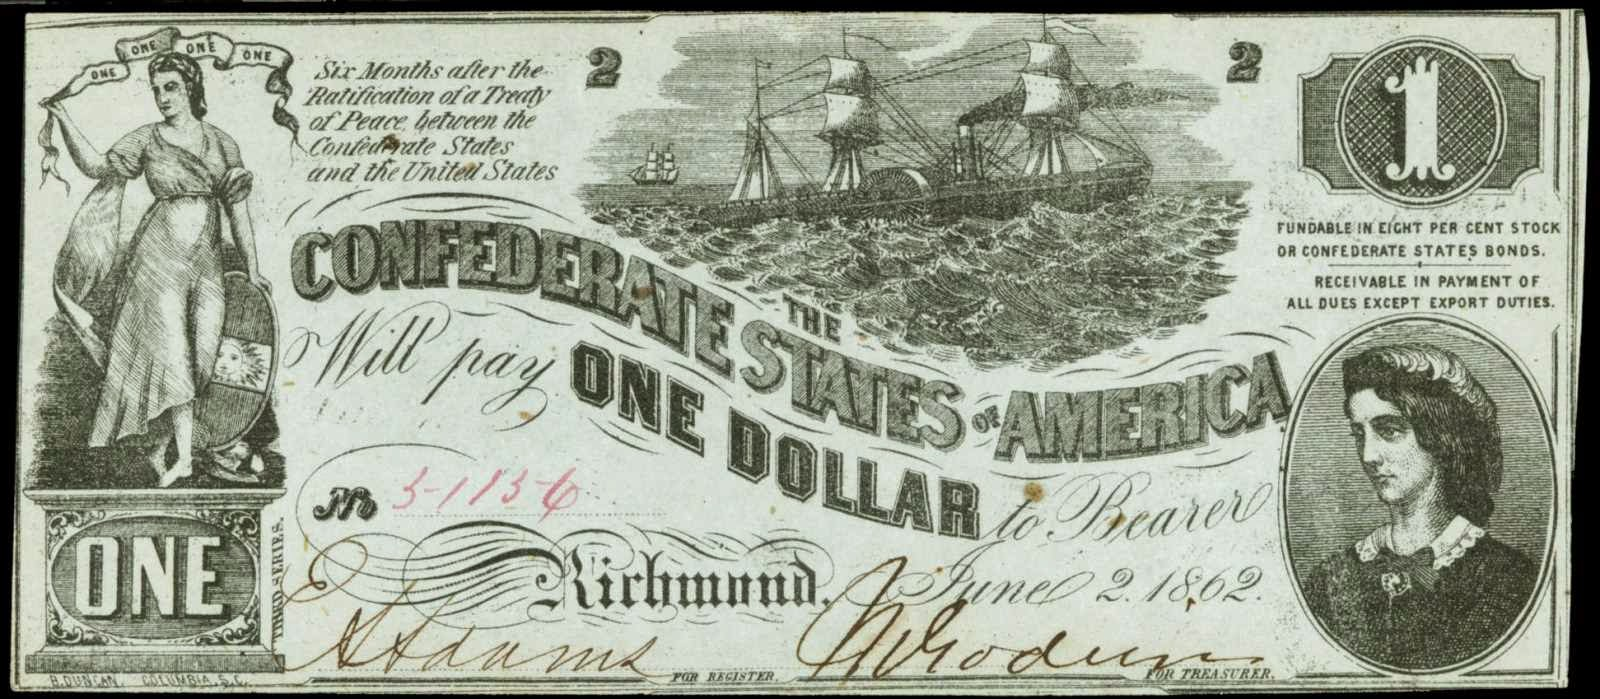 CSA Confederate States of America Dollar 1862 Lucy Pickens